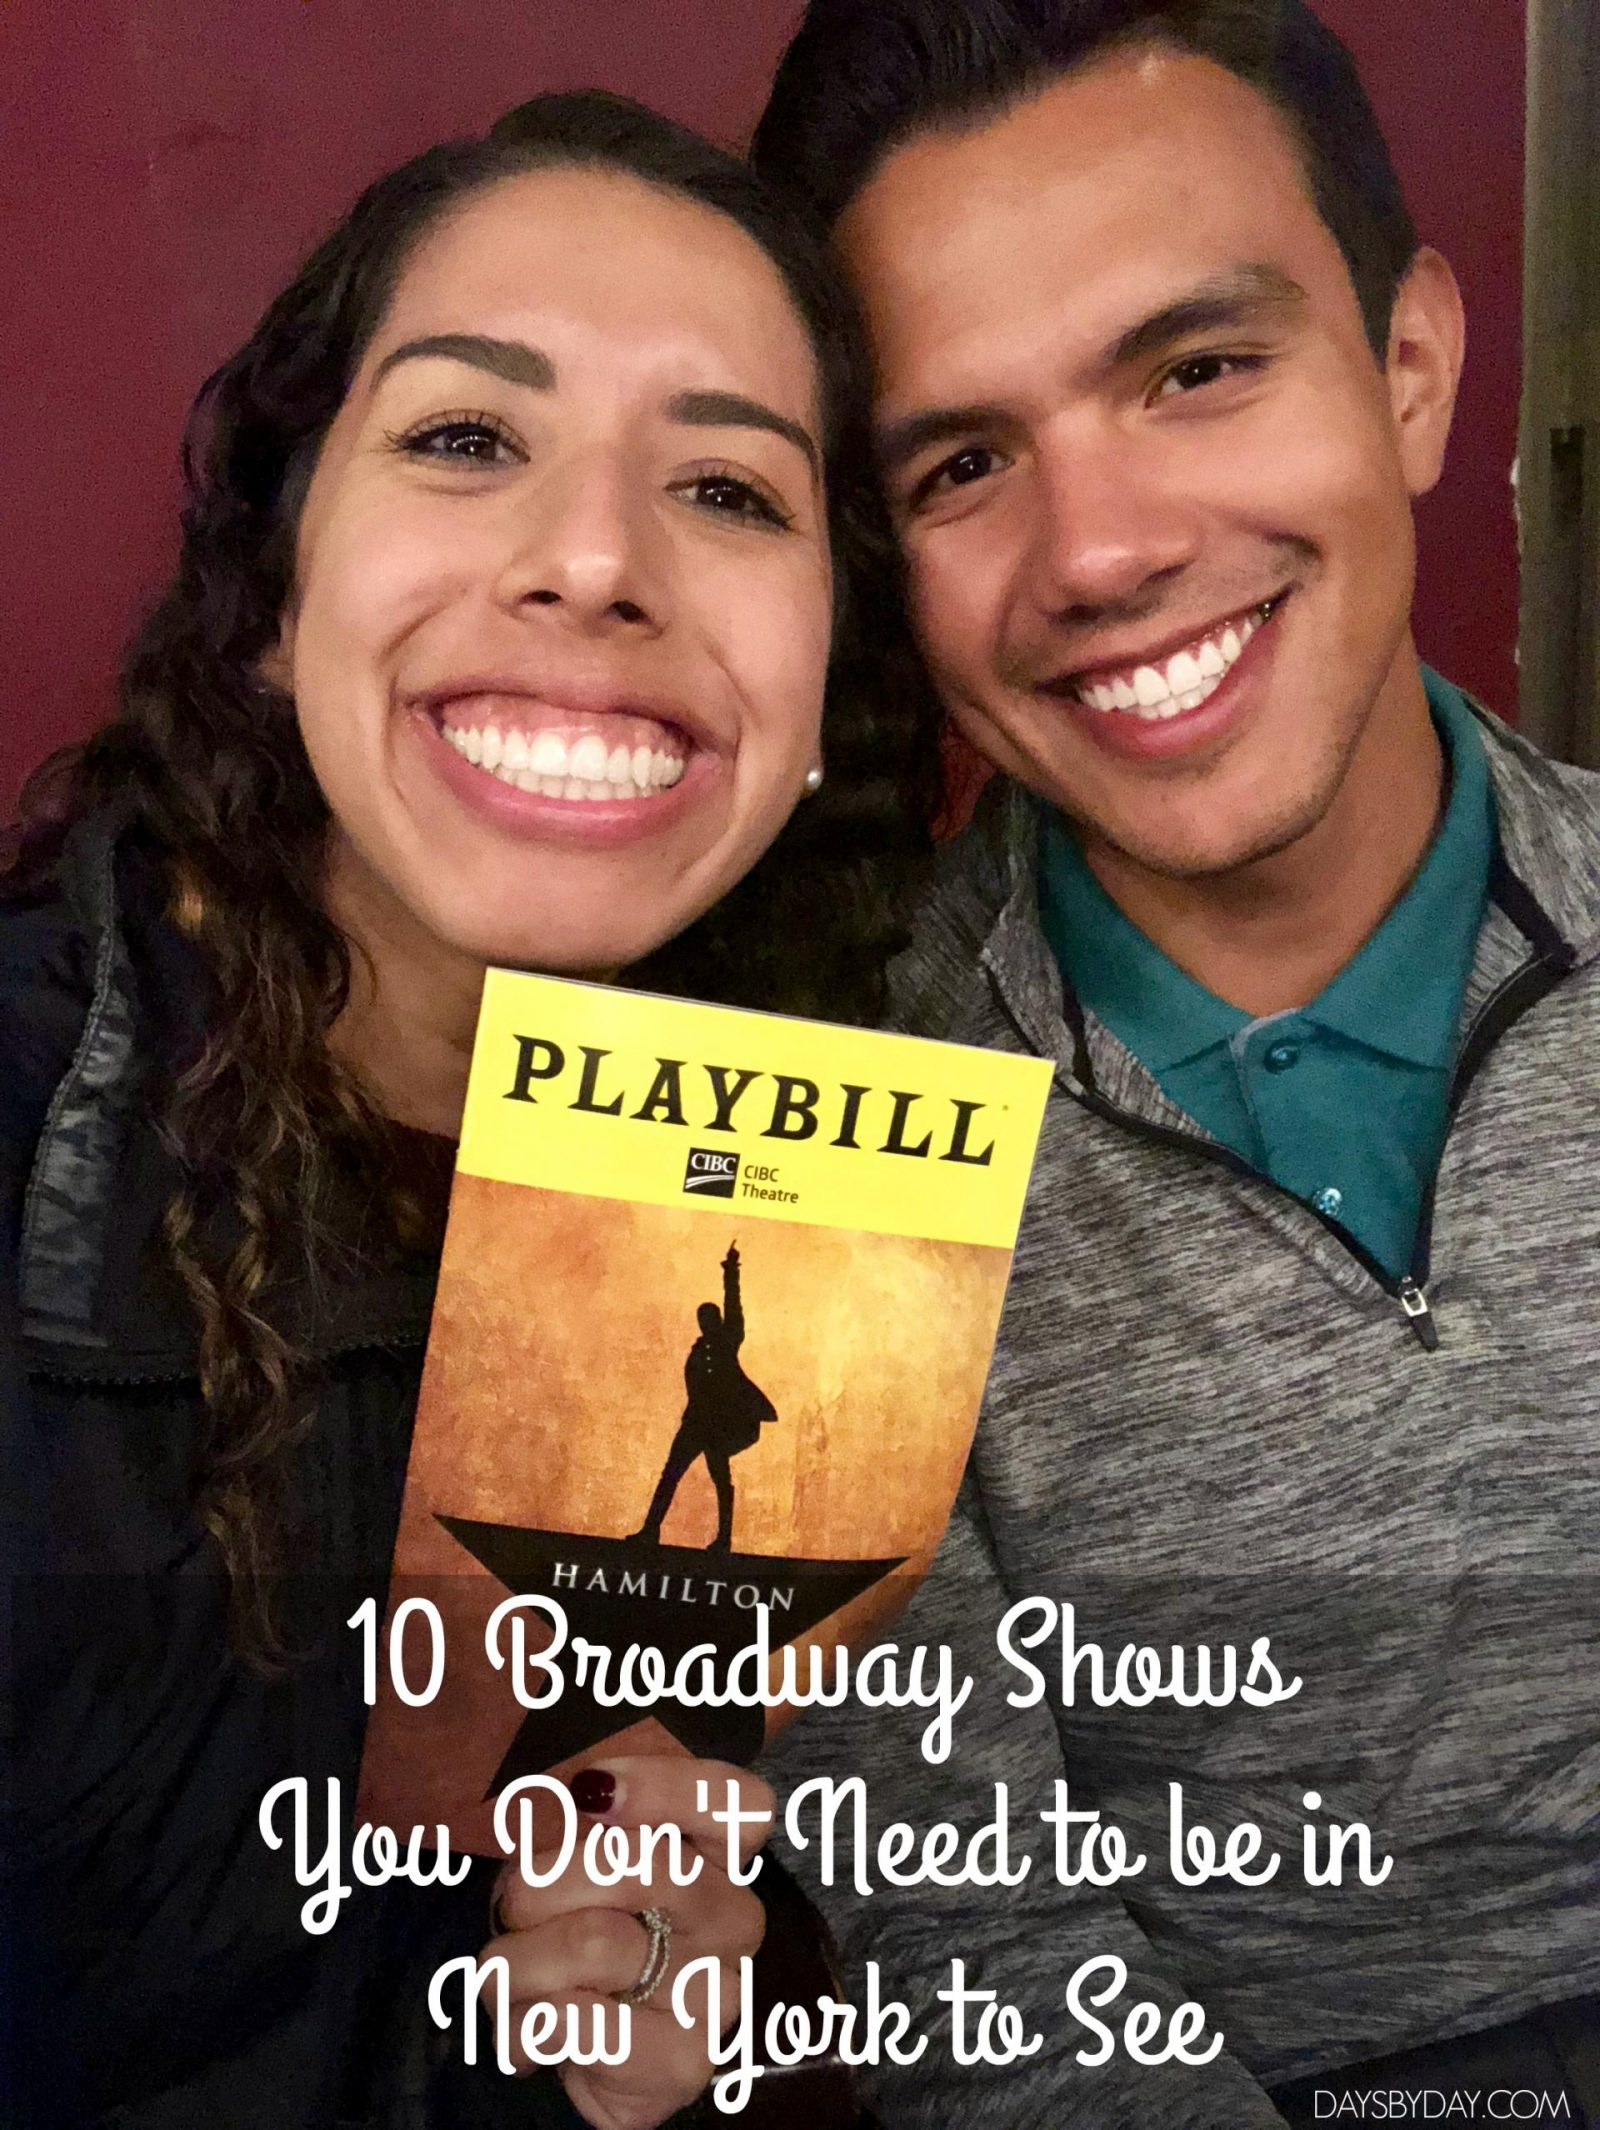 10 Broadway Shows You Don't Need to be in New York To See